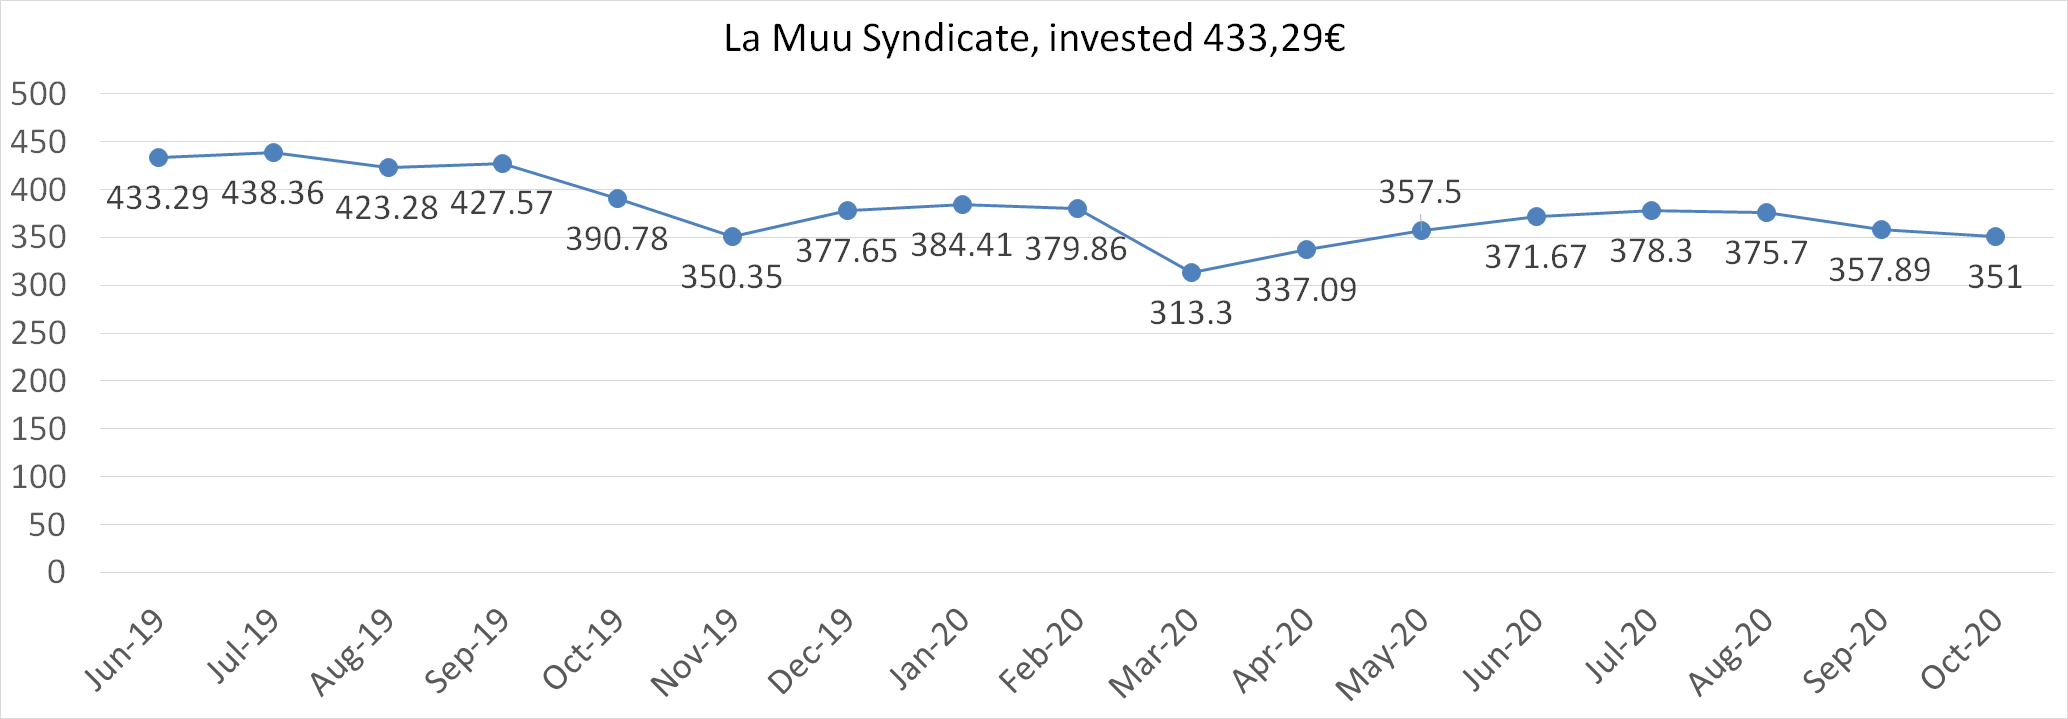 La Muu syndicate october 2020